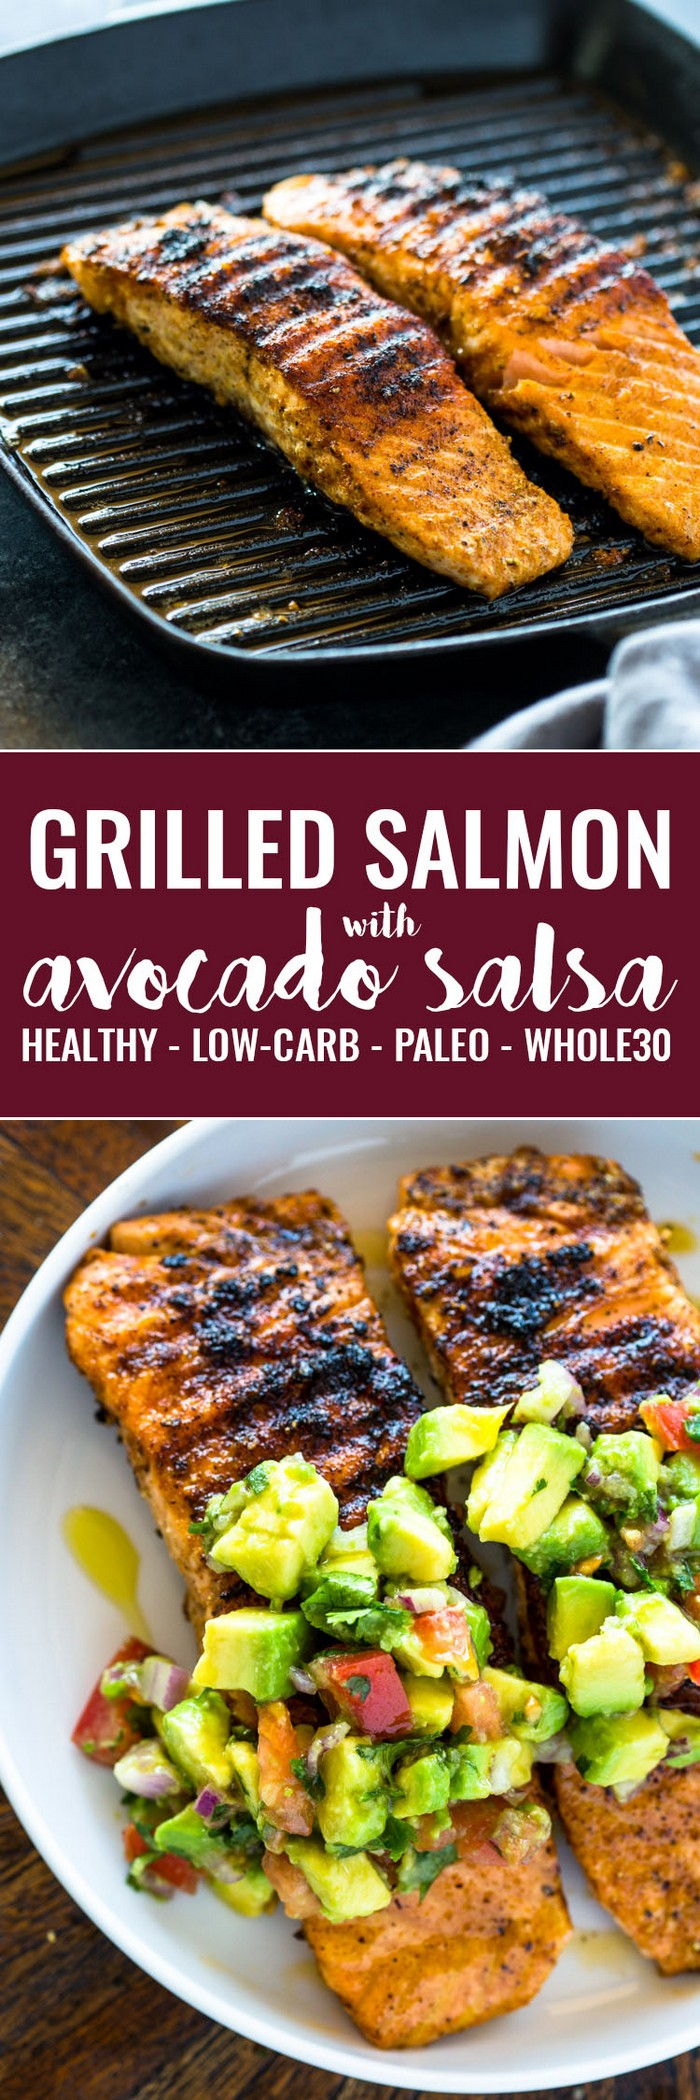 Salmon With Avocado Salsa Delicious Recipe